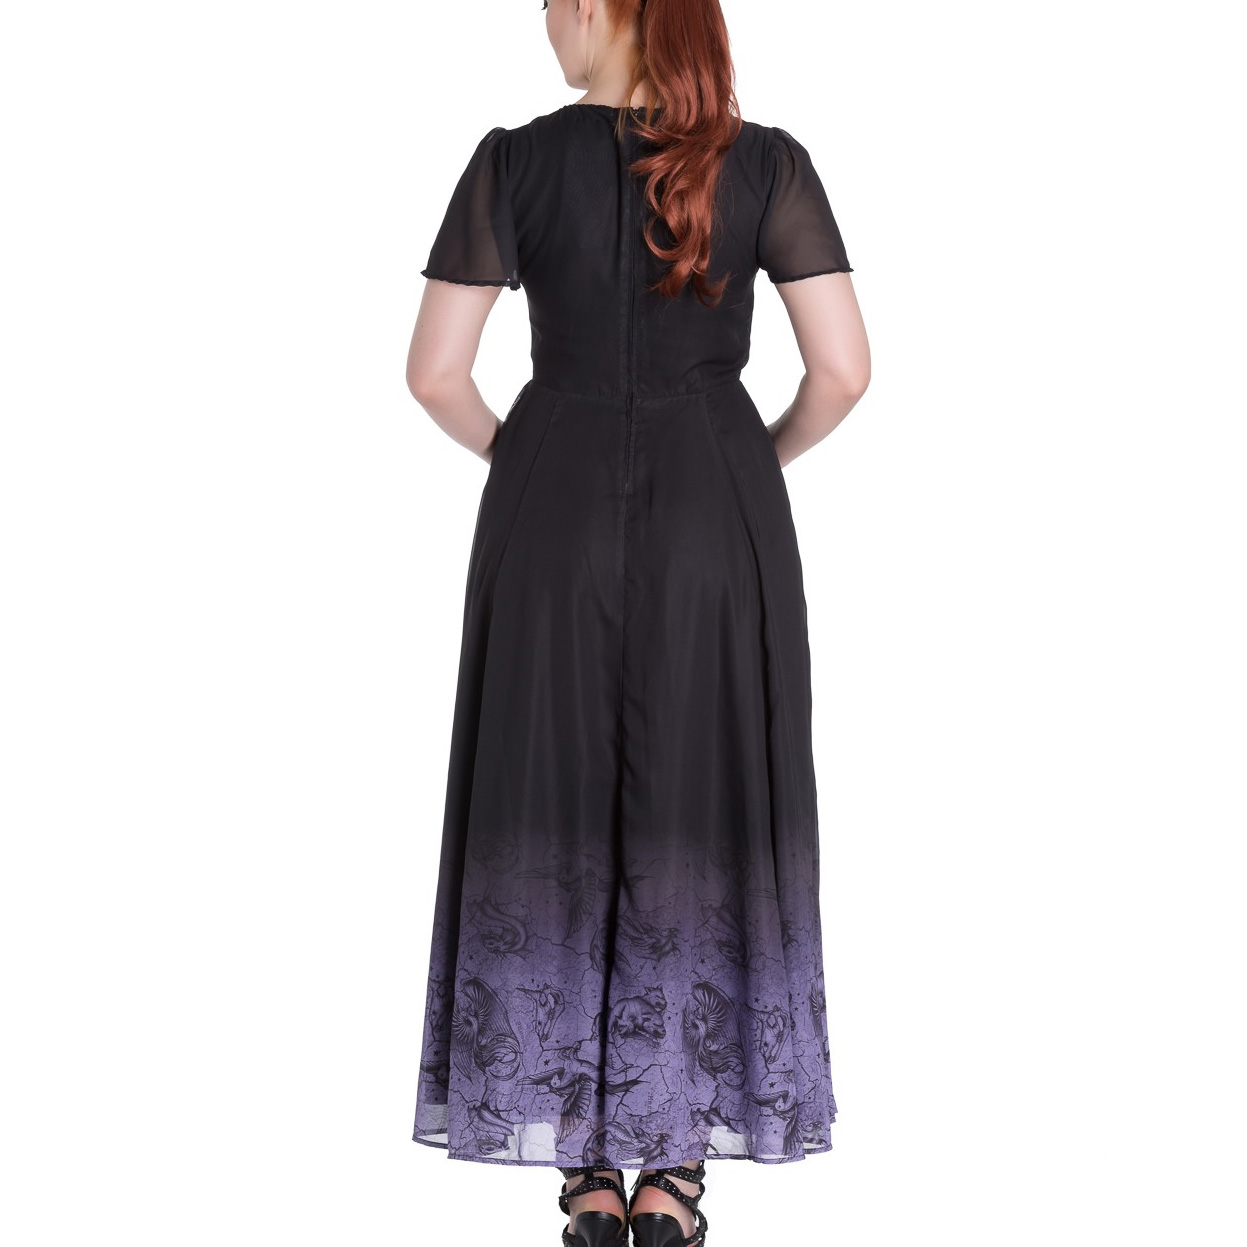 Hell-Bunny-Spin-Doctor-Goth-Maxi-Dress-EVADINE-Purple-Black-All-Sizes thumbnail 12